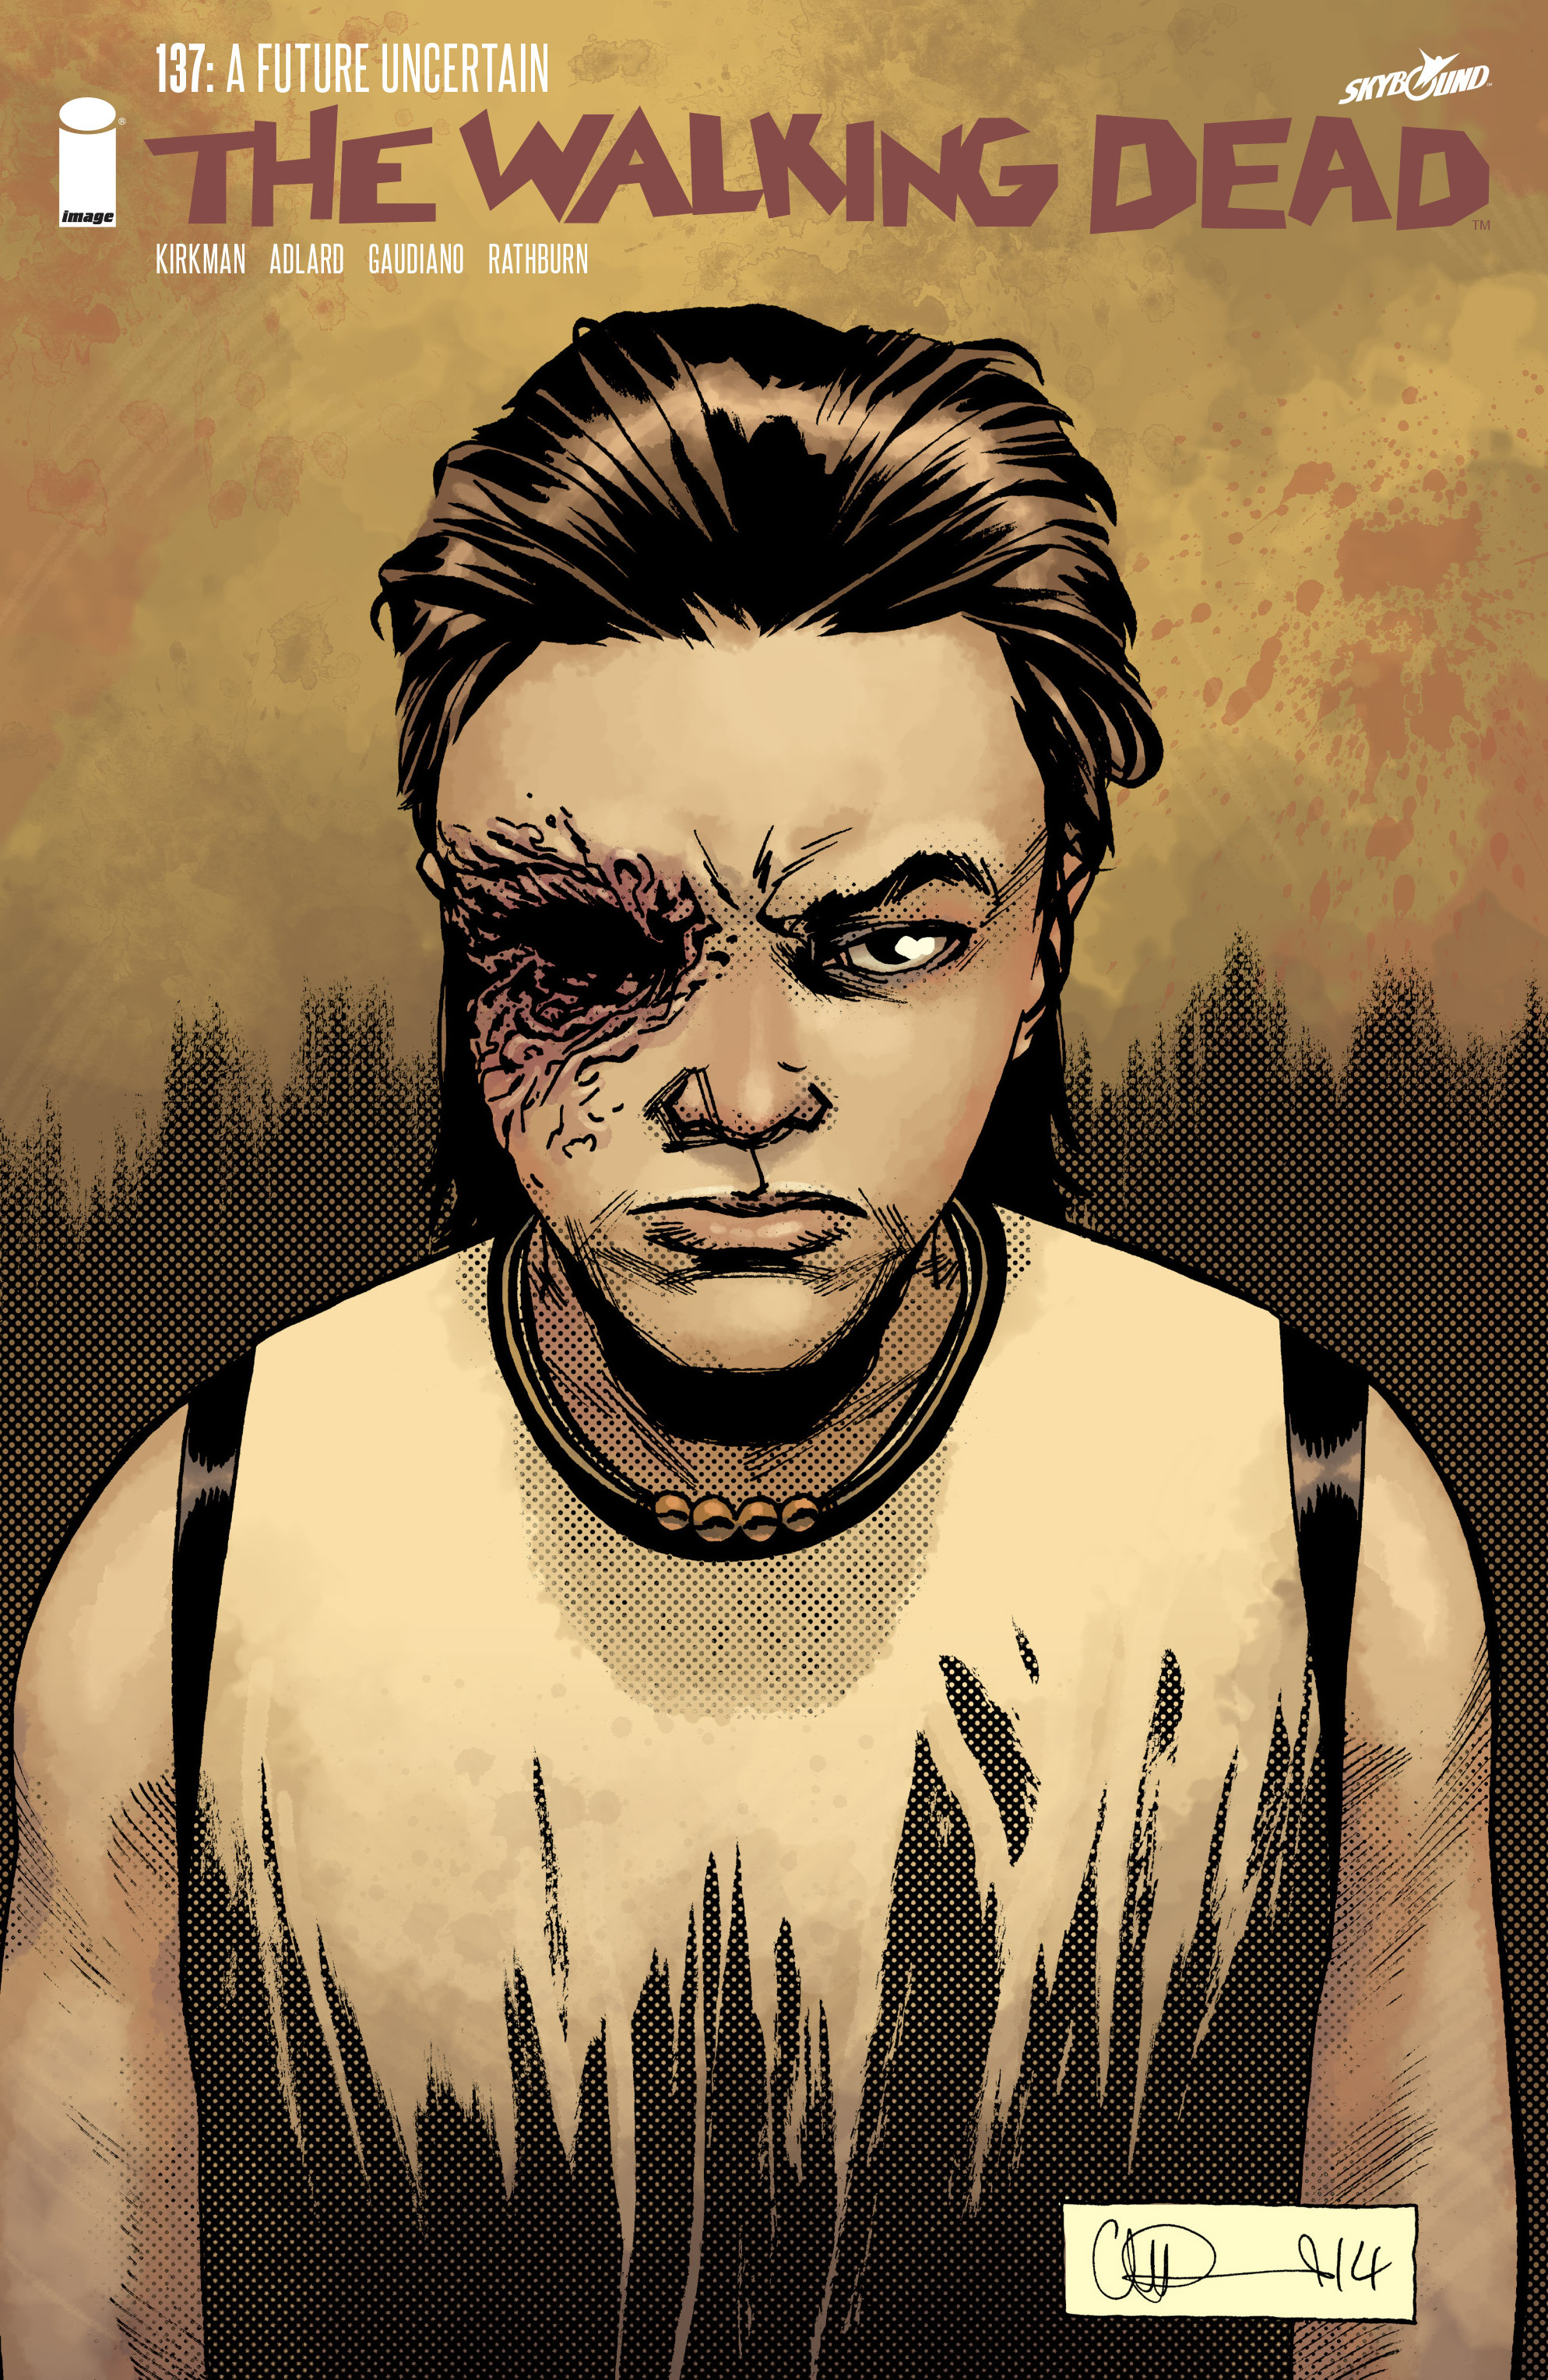 The Walking Dead 137 Page 1